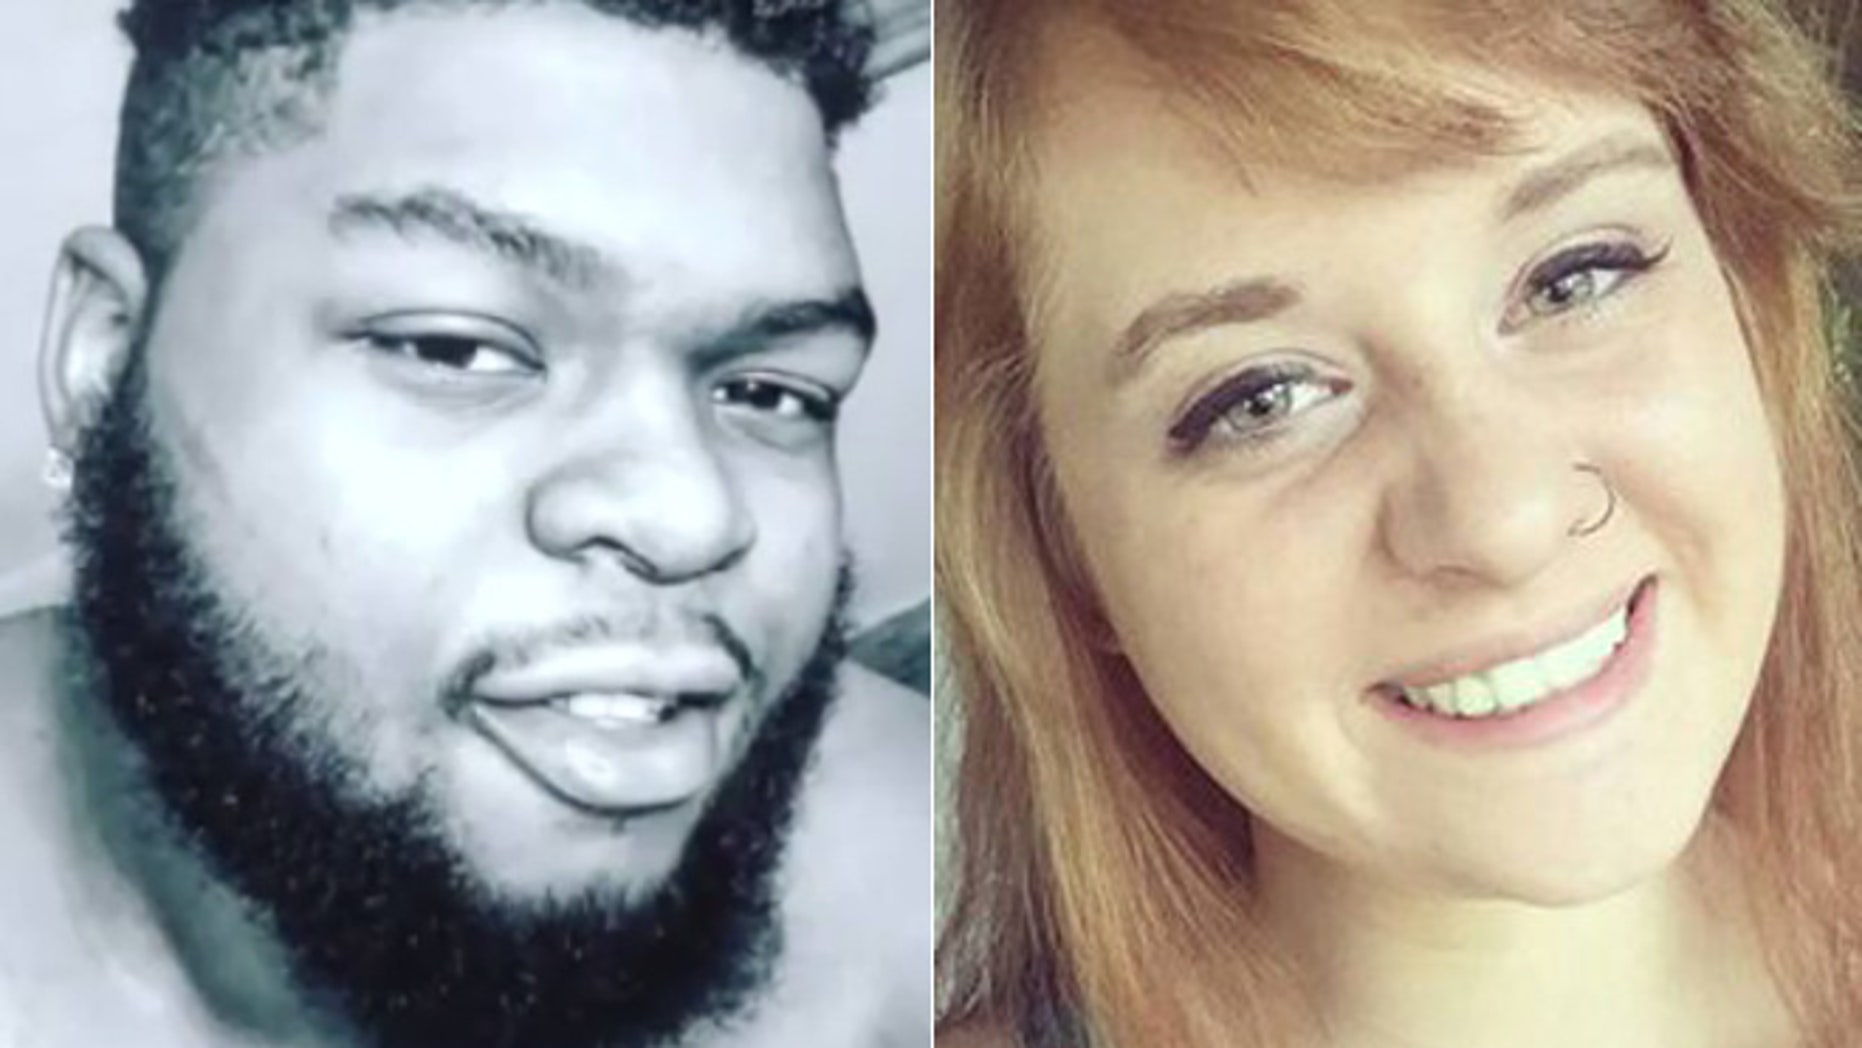 A search team found the body of Brandon Herring, left, while looking for Jessica Runions.